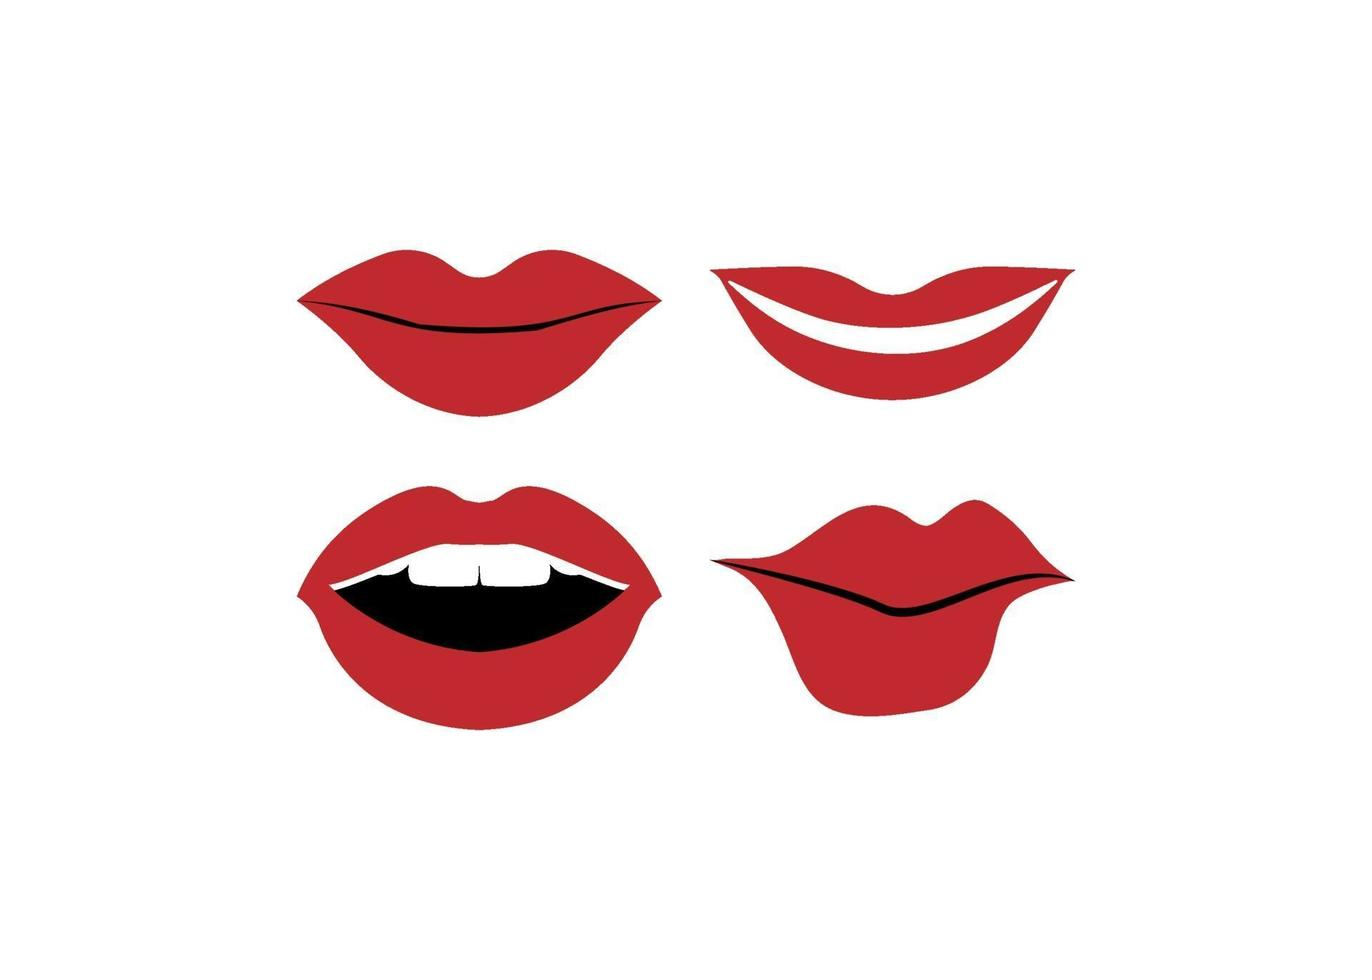 Lips mouth icon illustration vector set